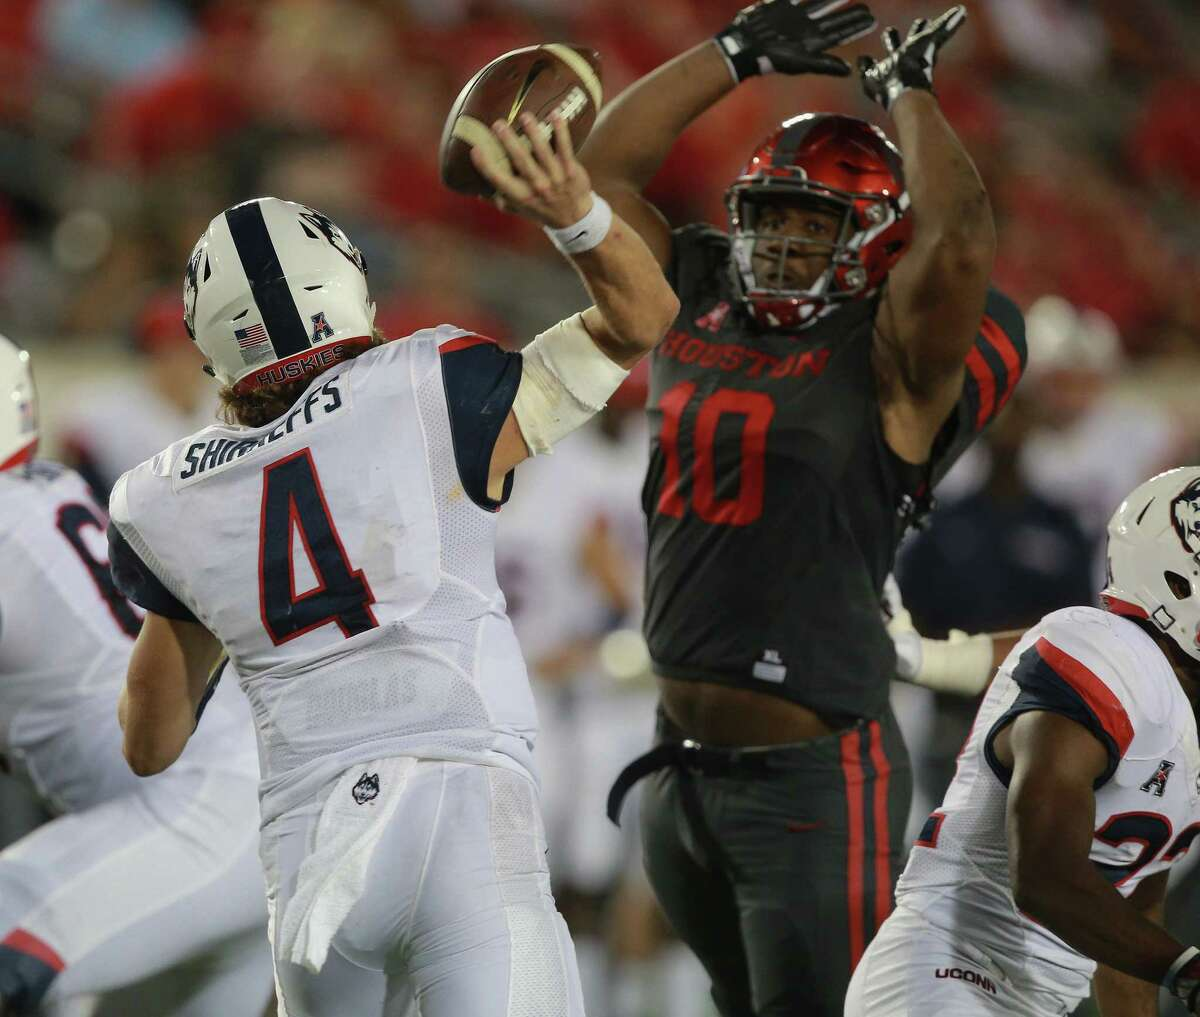 HOUSTON, TX - SEPTEMBER 29: Bryant Shirreffs #4 of the Connecticut Huskies has is pass attempt knocked down by Ed Oliver #10 of the Houston Cougars in the fourth quarter on September 29, 2016 in Houston, Texas. (Photo by Bob Levey/Getty Images)